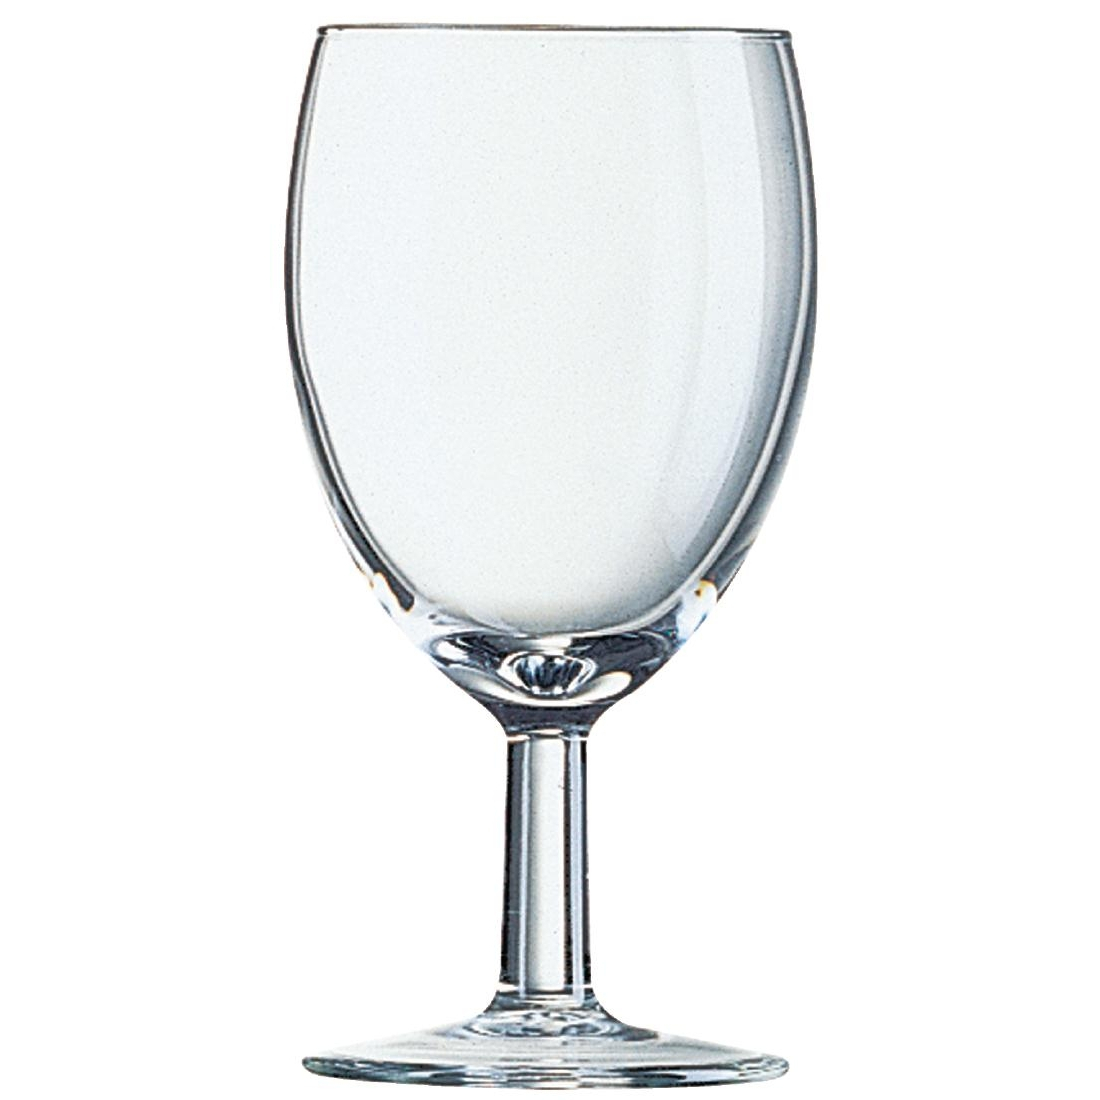 Arcoroc Savoie Wine Glasses 240ml CE Marked at 175ml